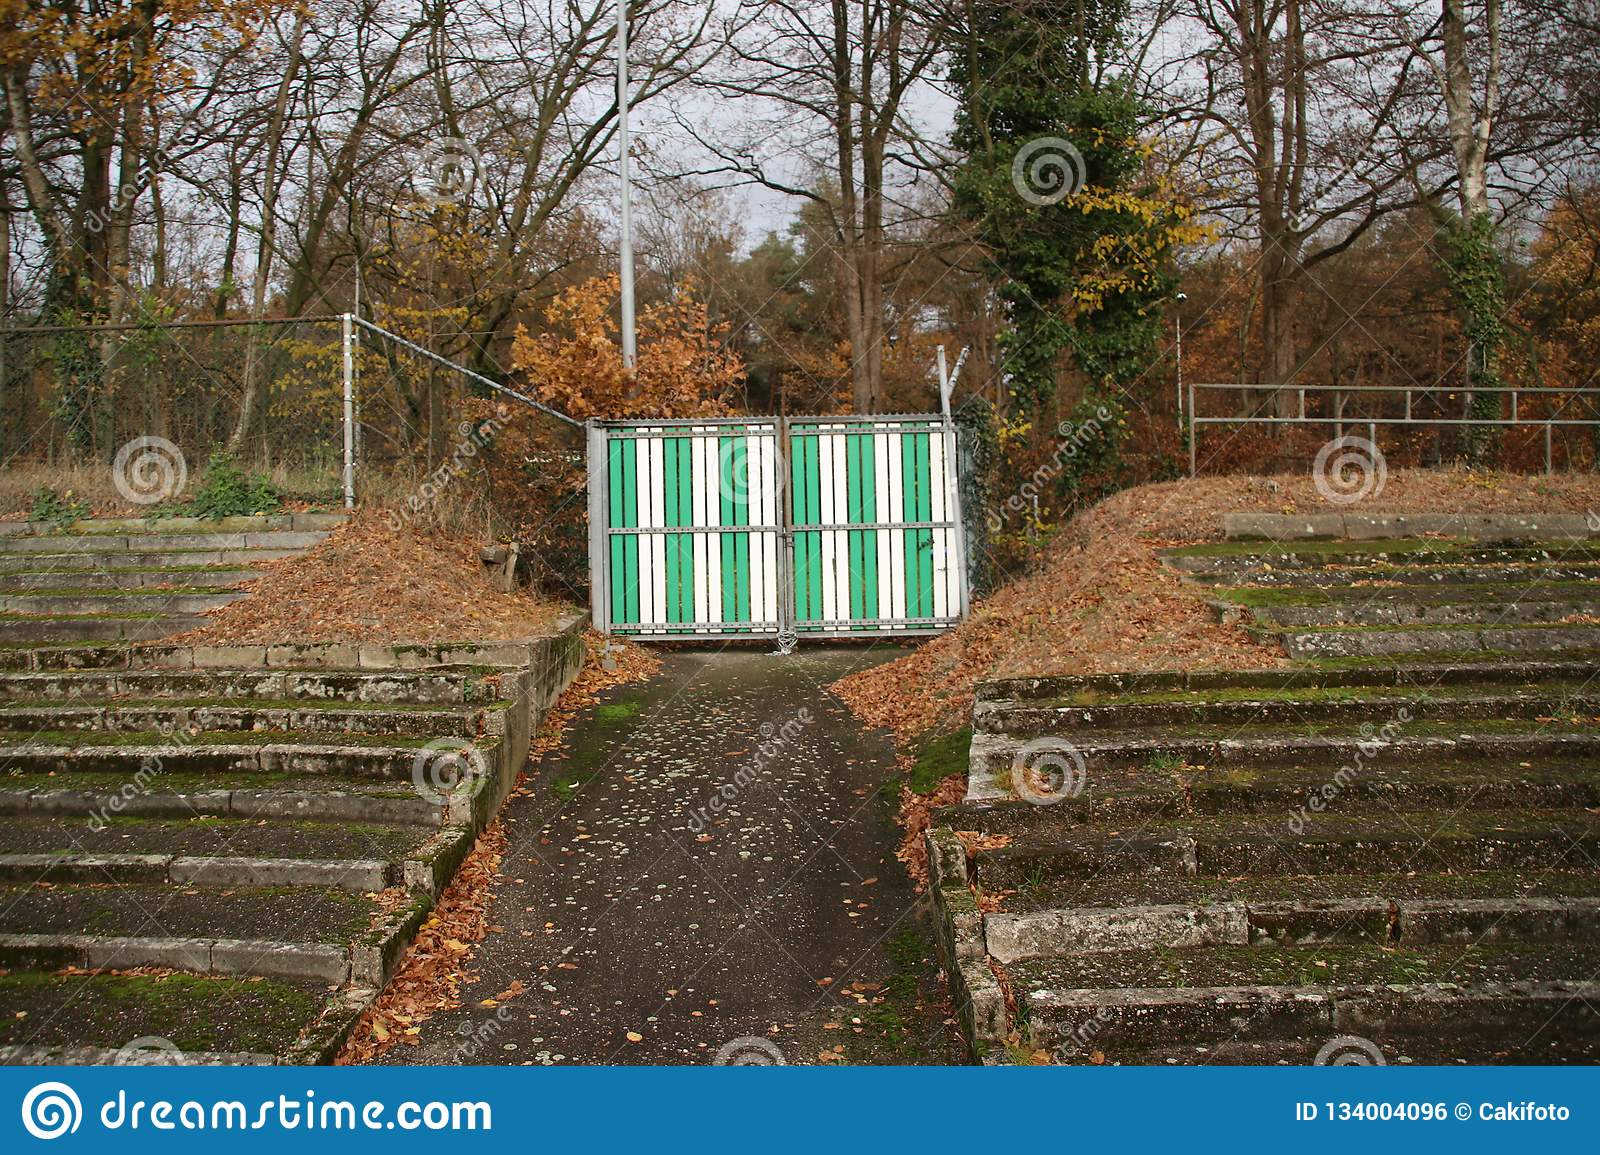 Abandoned soccer stadium in Wageningen named Wageningse Berg